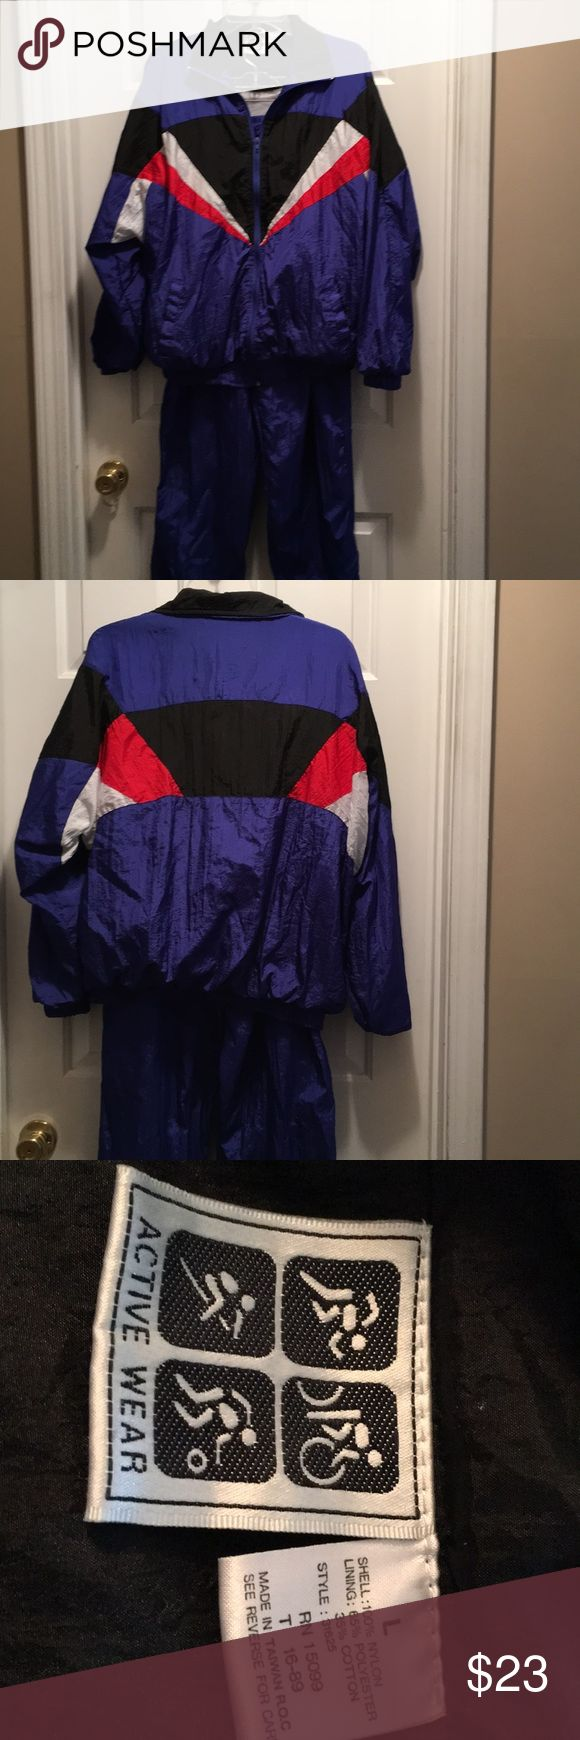 Active Wear Men's Jogging Suit Size L Men's Active Wear Jogging Suit done with Royal Blue accented with Red, White and Black.  Pockets are in the jacket as well as the pants.  It's a zippered front.  In great condition.  See photo number 4 where the tie is a little damaged. Active Wear Other